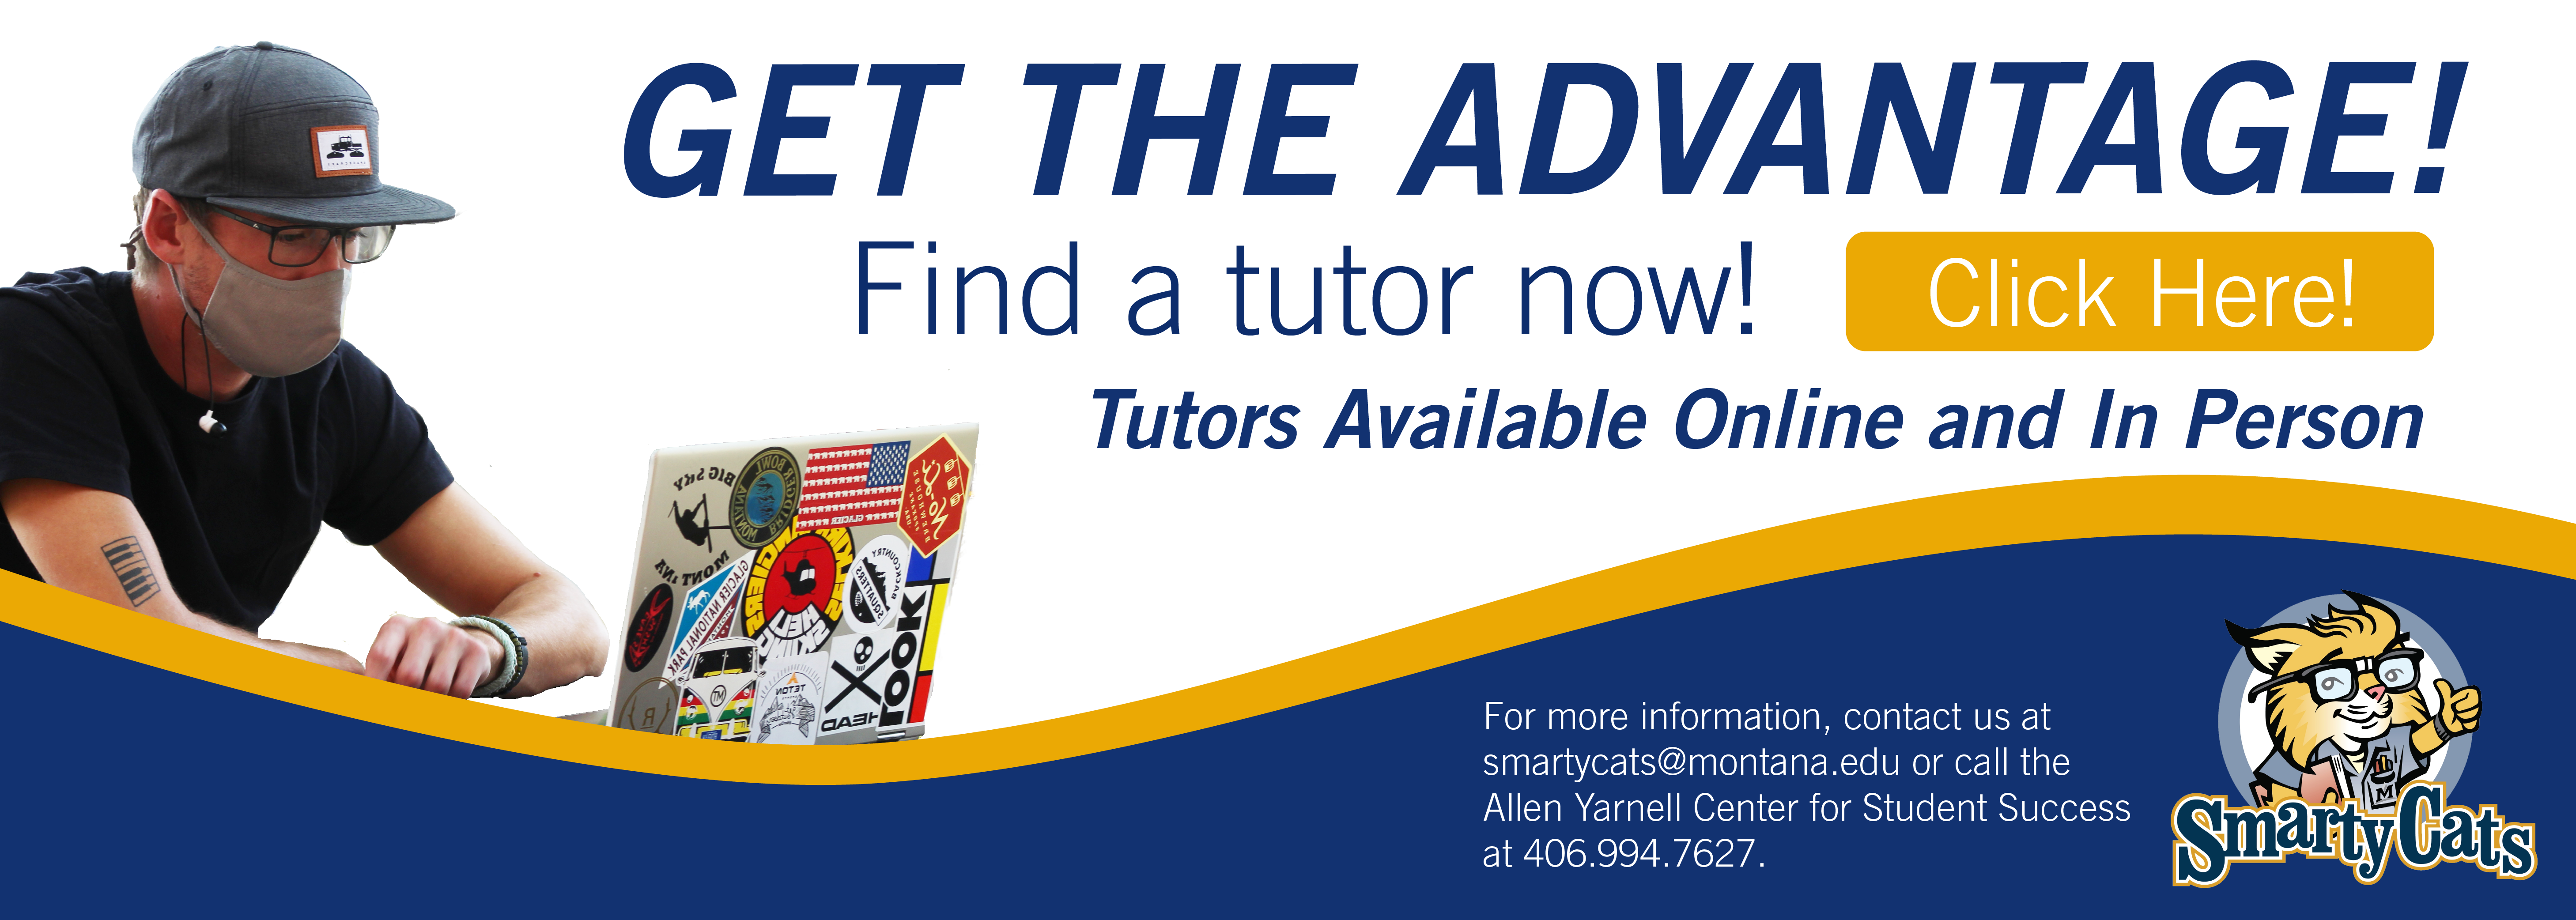 Get the Advantage! Find a tutor now. Click Here. Tutors available online and in person. For more information contact us at smartycats@montana.edu or call the Allen Yarnell Center for student success at 406.994.7627